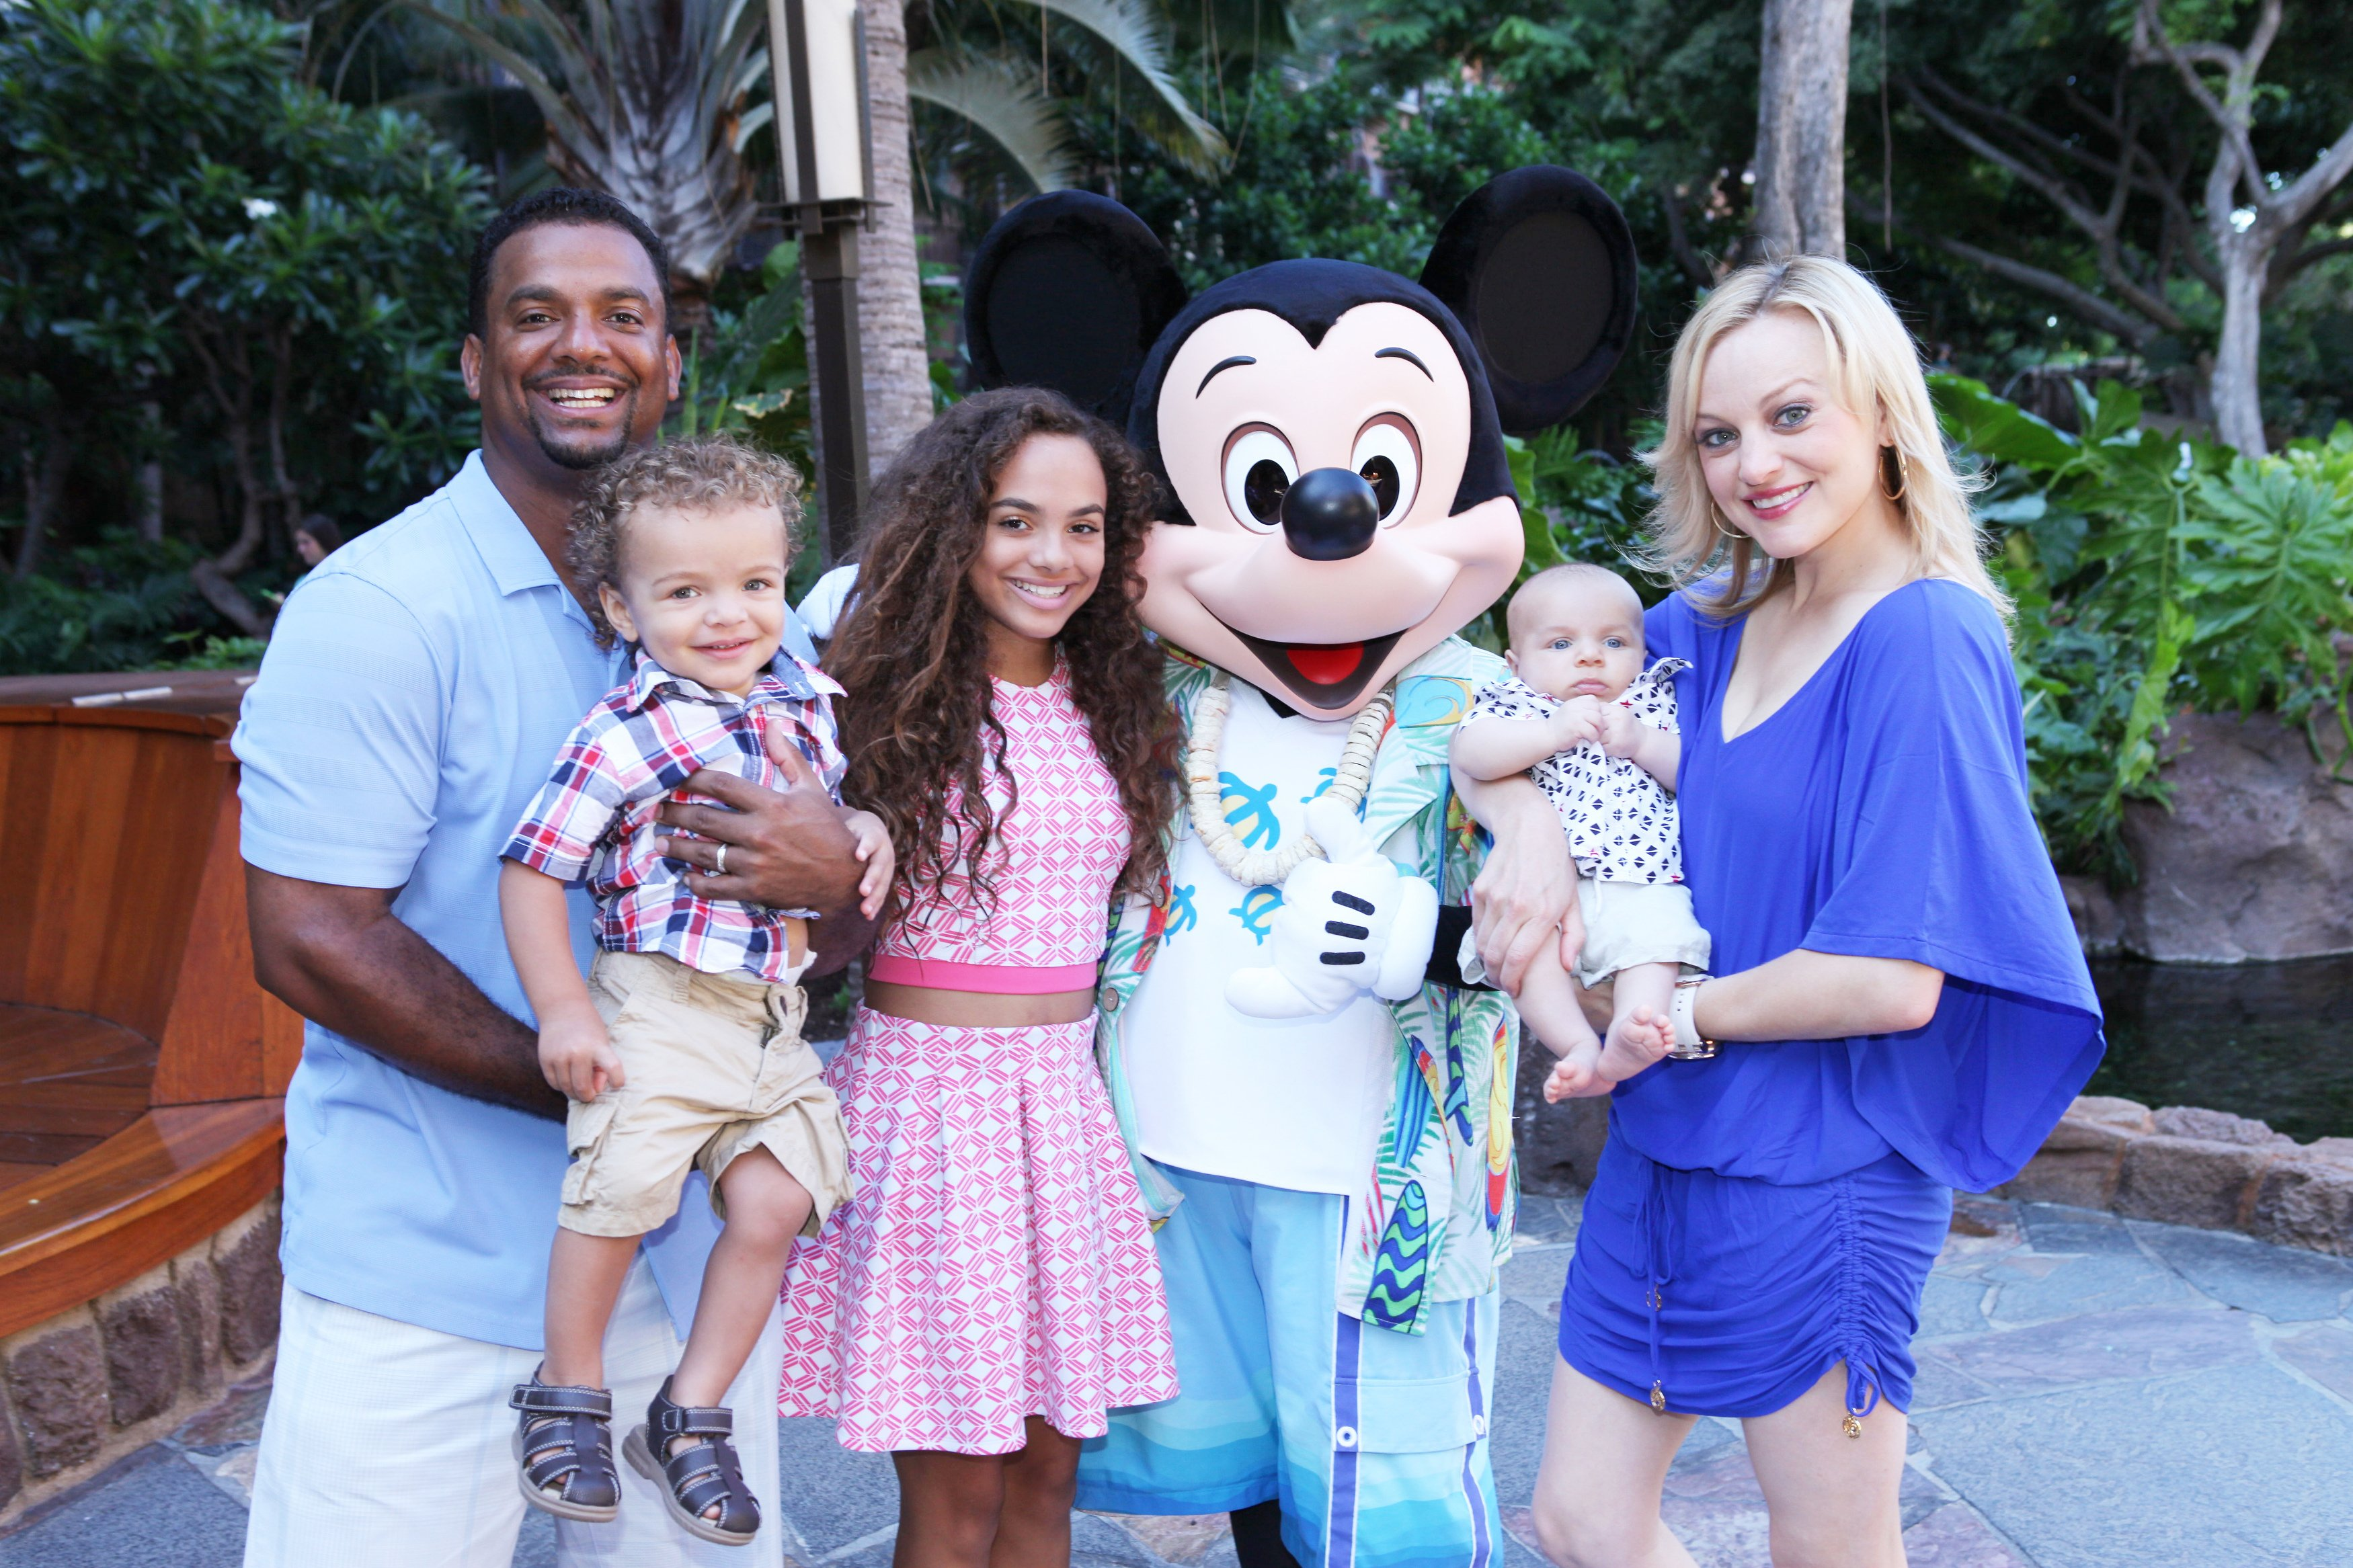 Alfonso Ribeiro and his family pose with Mickey Mouse at a Disney Resort & Spa on July 26, 2015 in Hawaii. | Source: Getty Images